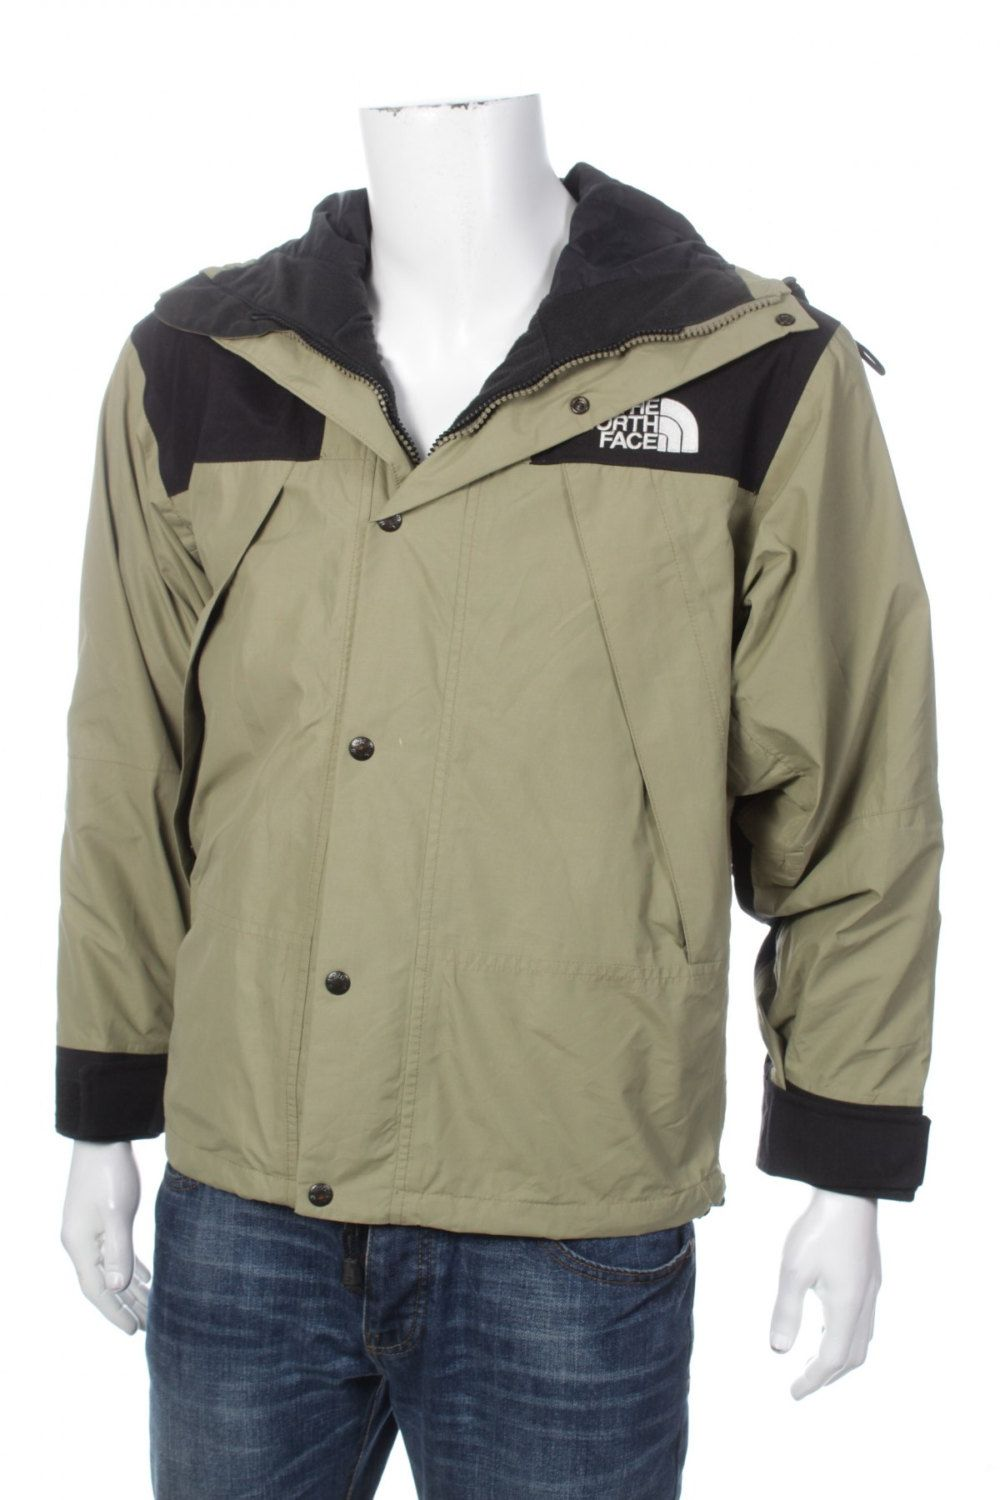 Vintage 90s The North Face Mountain Guide Gore Tex Jacket Beige Black Size S Gore Tex Jacket The North Face Gore Tex [ 1500 x 1000 Pixel ]